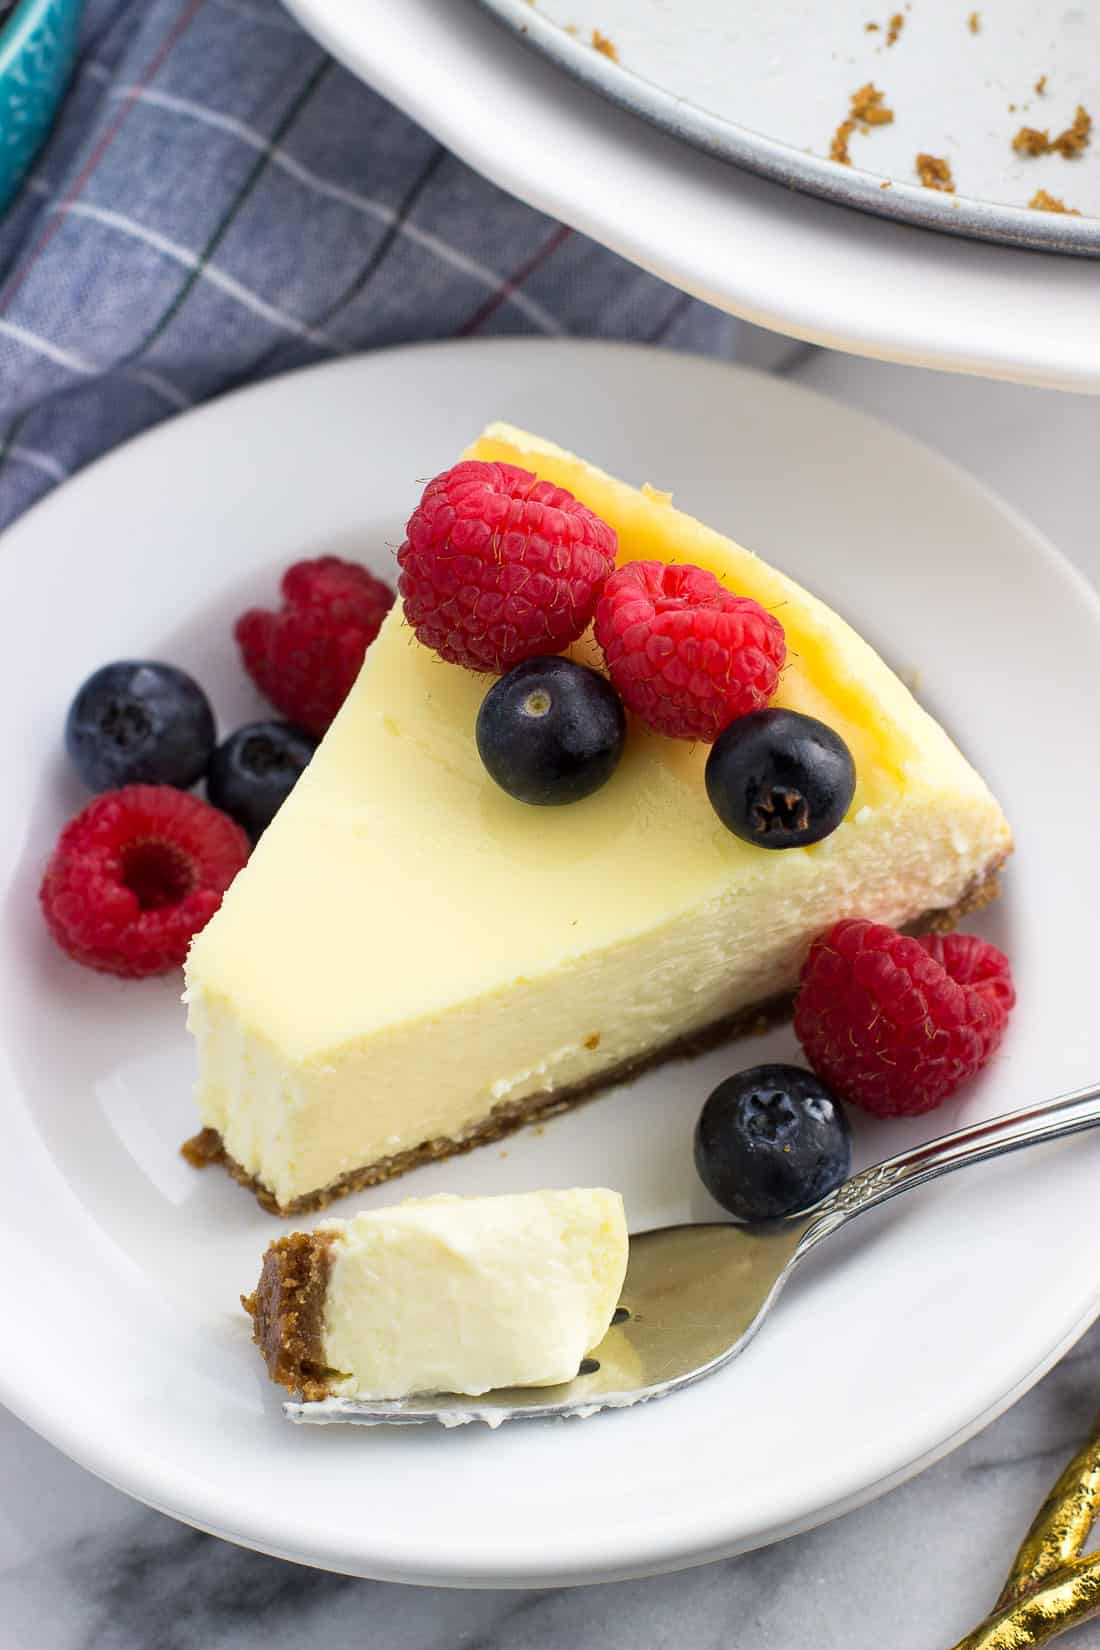 A slice of cheesecake on dessert plate topped with mixed berries